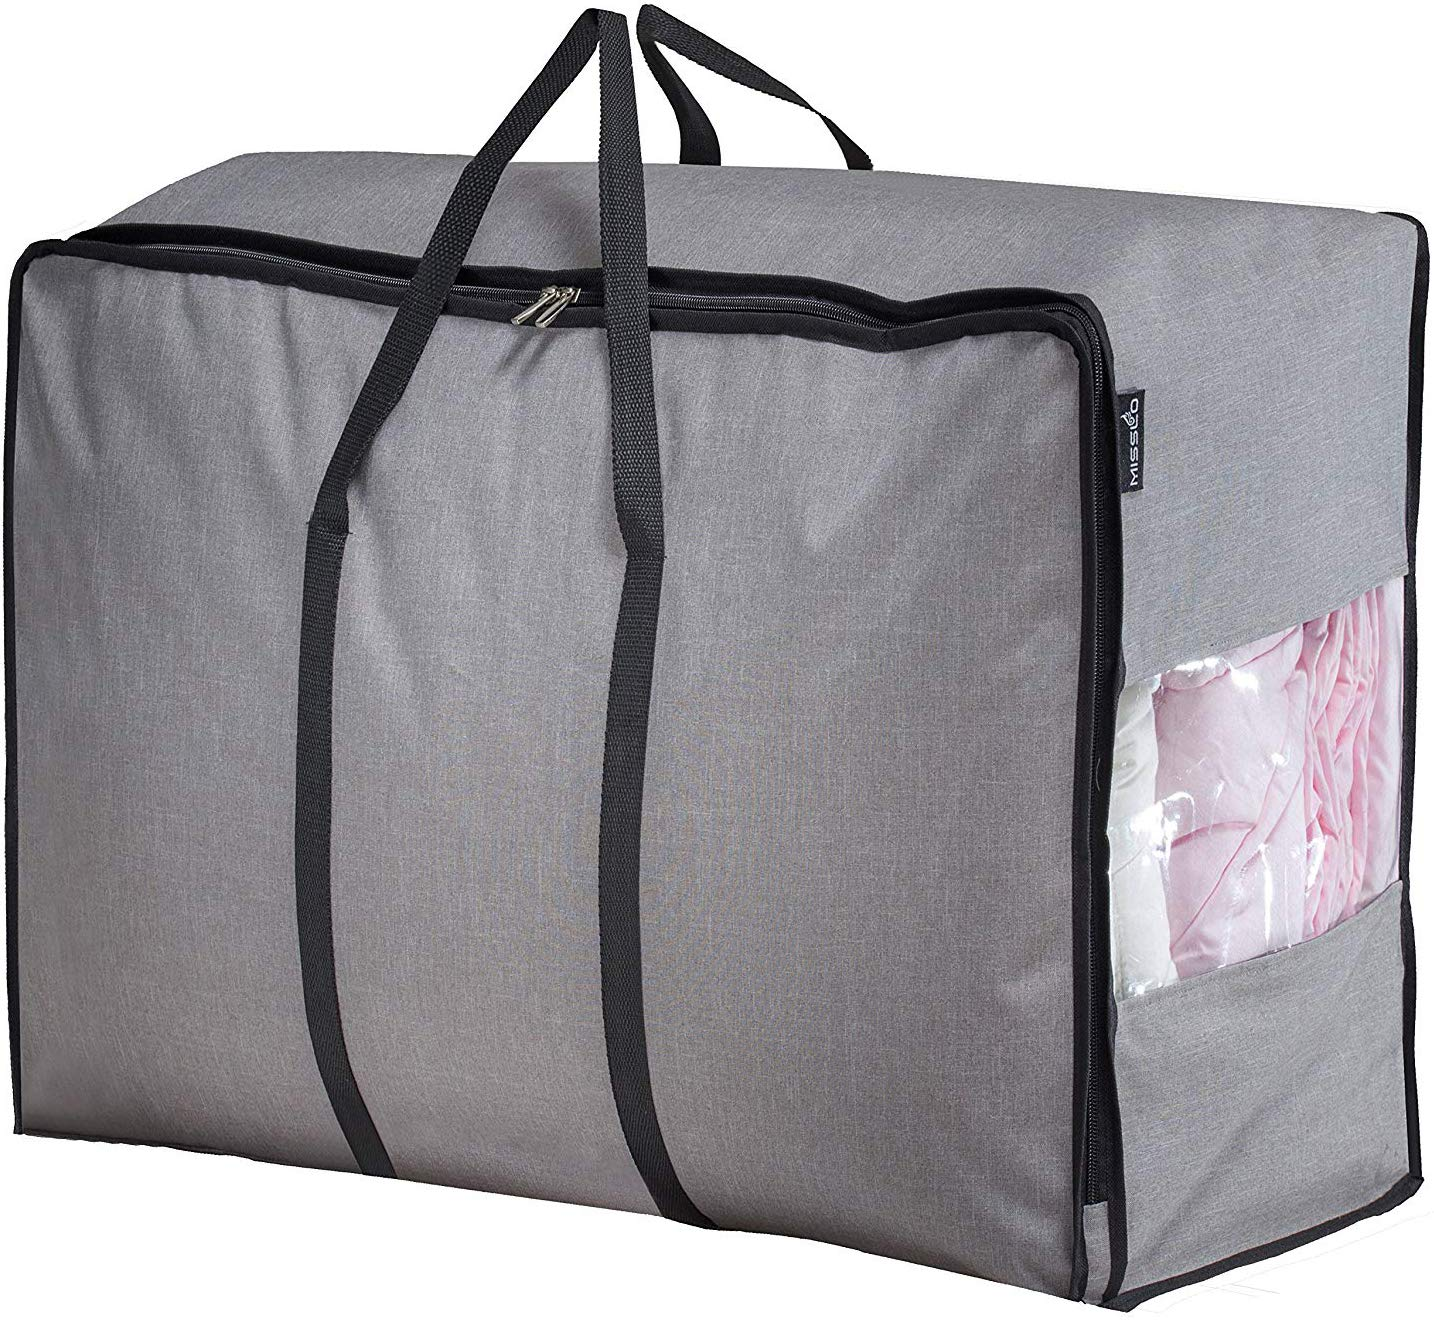 MISSLO Water Resistant Thick Over Size Storage Bag, Folding Organizer Bag, Under Bed Storage, College Carrying Bag for Bedding Comforters, Blanket, Clothes (Grey)